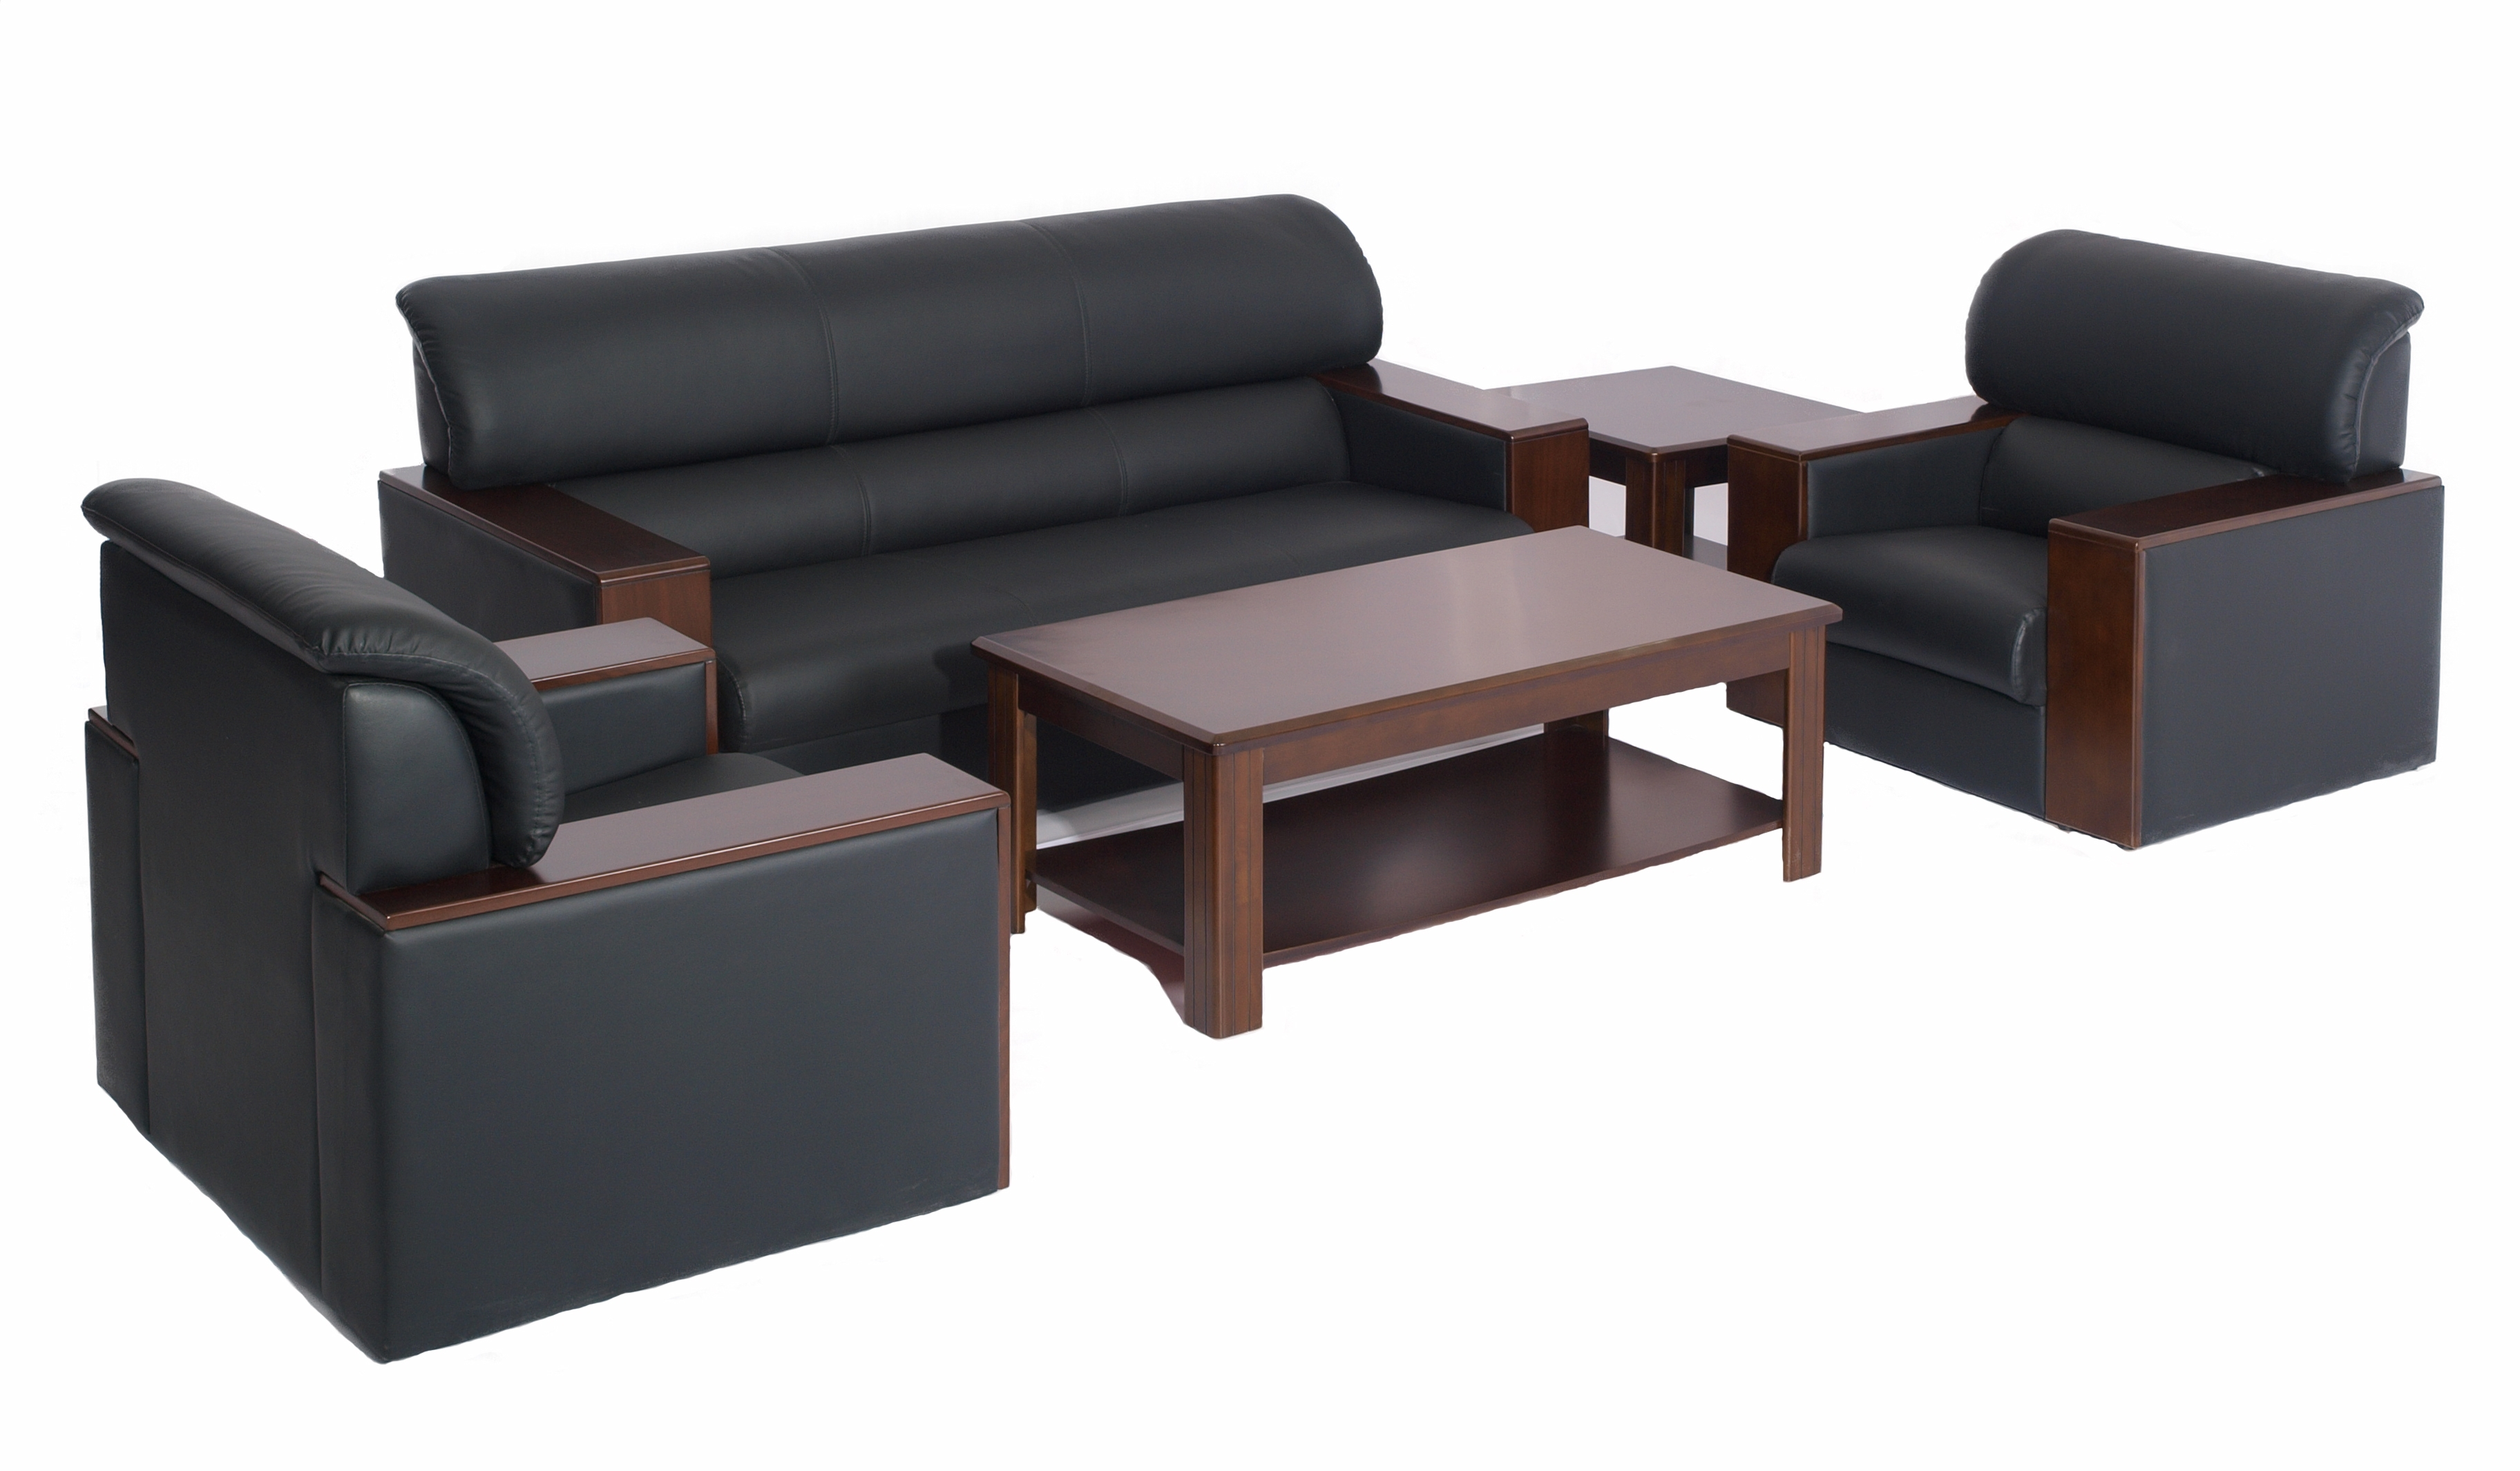 Office Sofas And Chairs Regarding Most Popular Cool Office Furniture Sofa Sofas And Chairs Uk Bed Table Design (View 12 of 15)